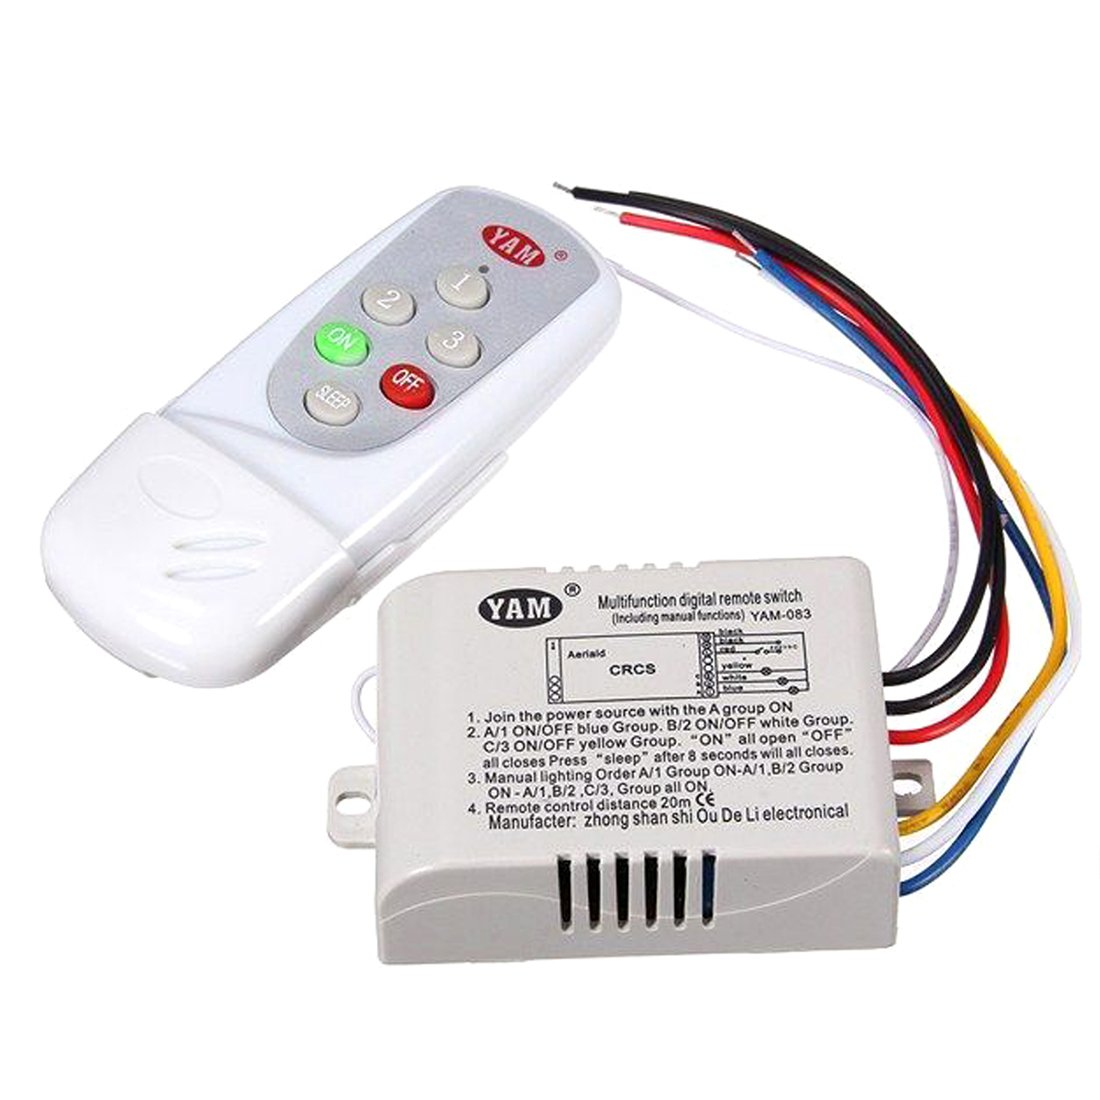 Lamp Remote Control Switch Yam Ac 220v Wireless Light Digital Electrical Wiring Lab Manual With White 083 3 Way